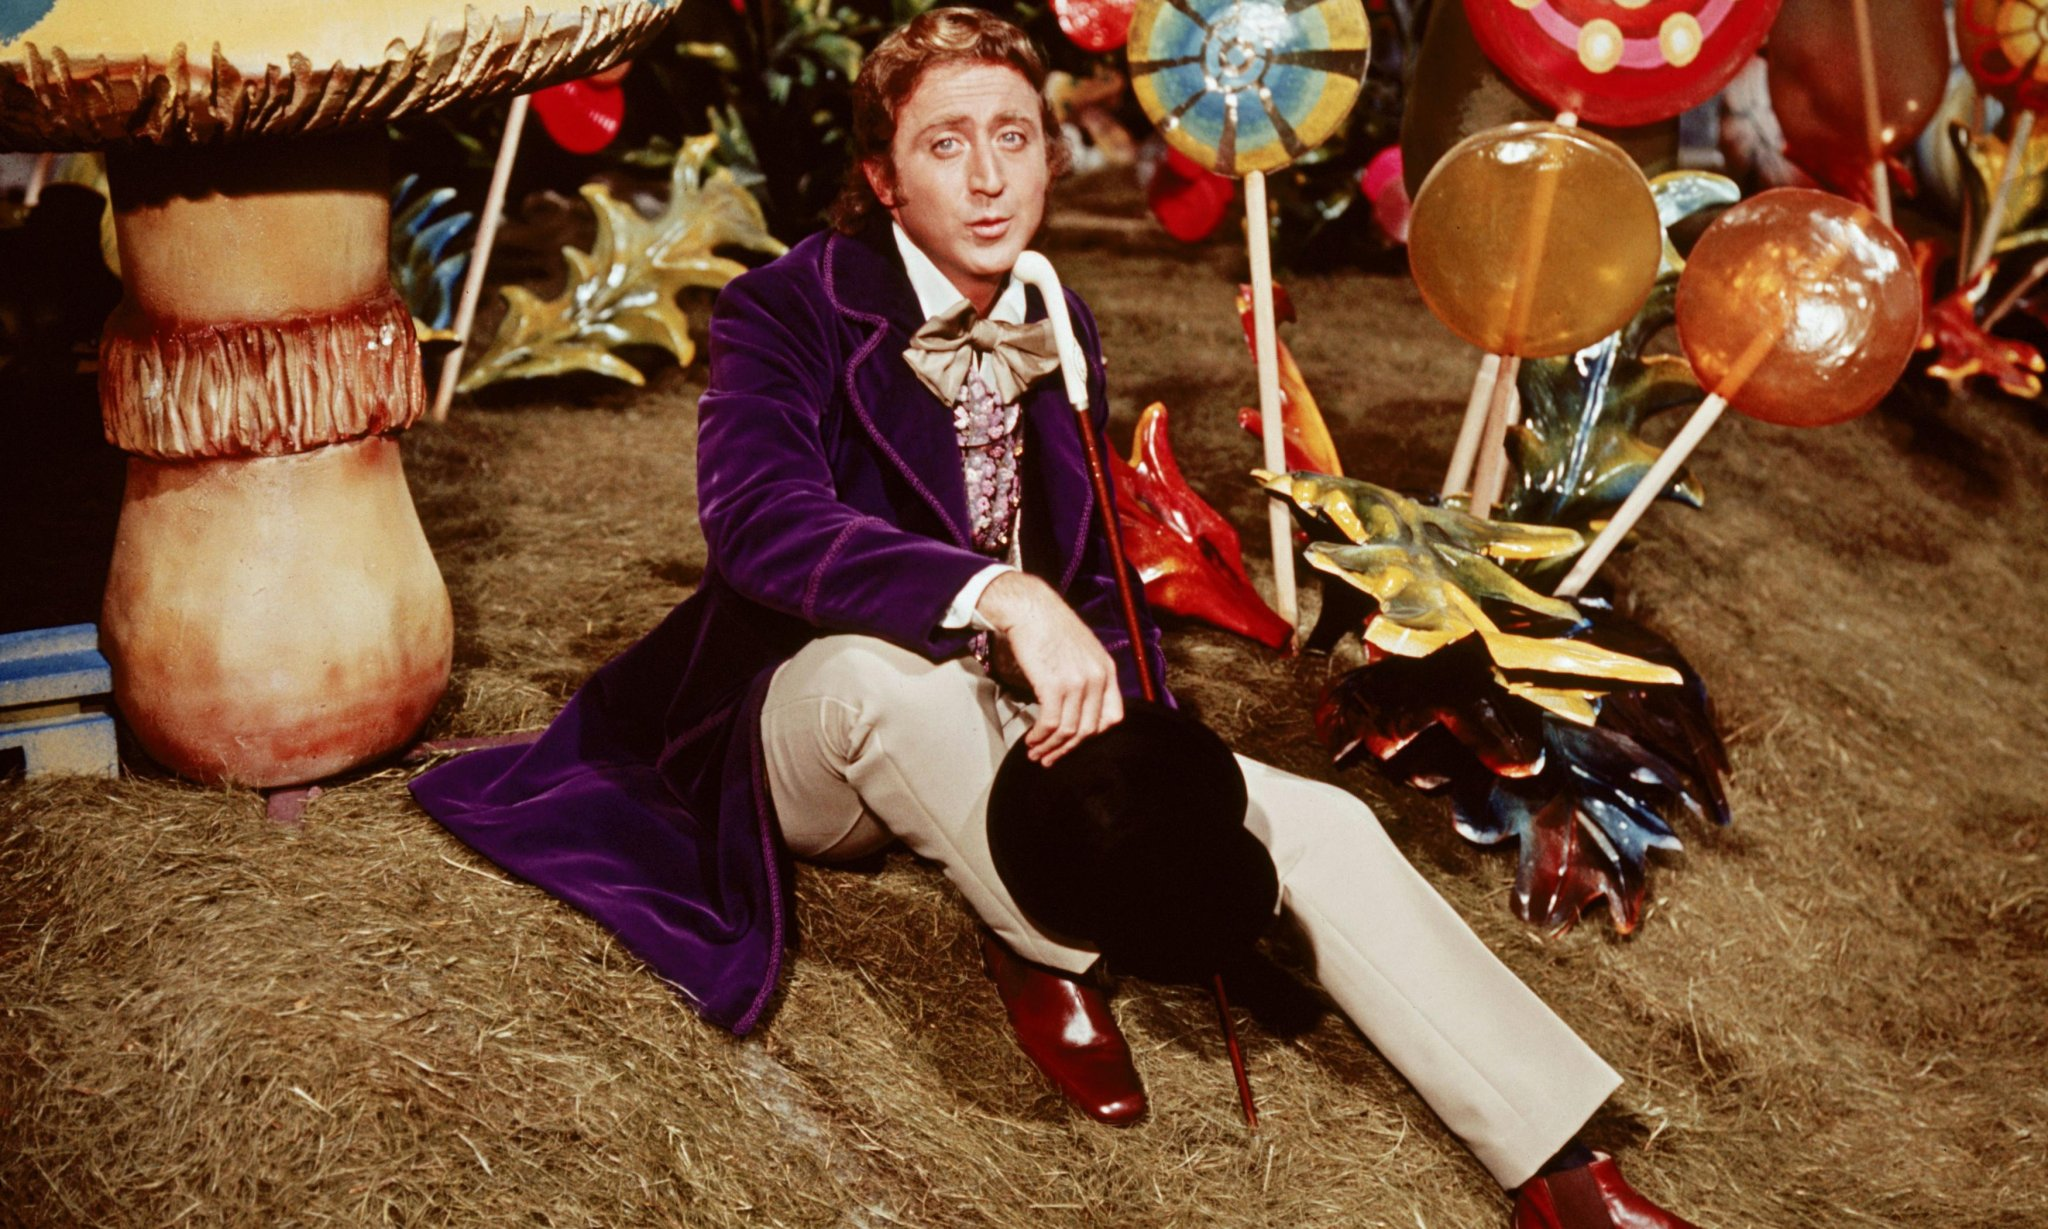 Willy Wonka and the Chocolate Factory at 50: a clunky film that Roald Dahl rightly hated